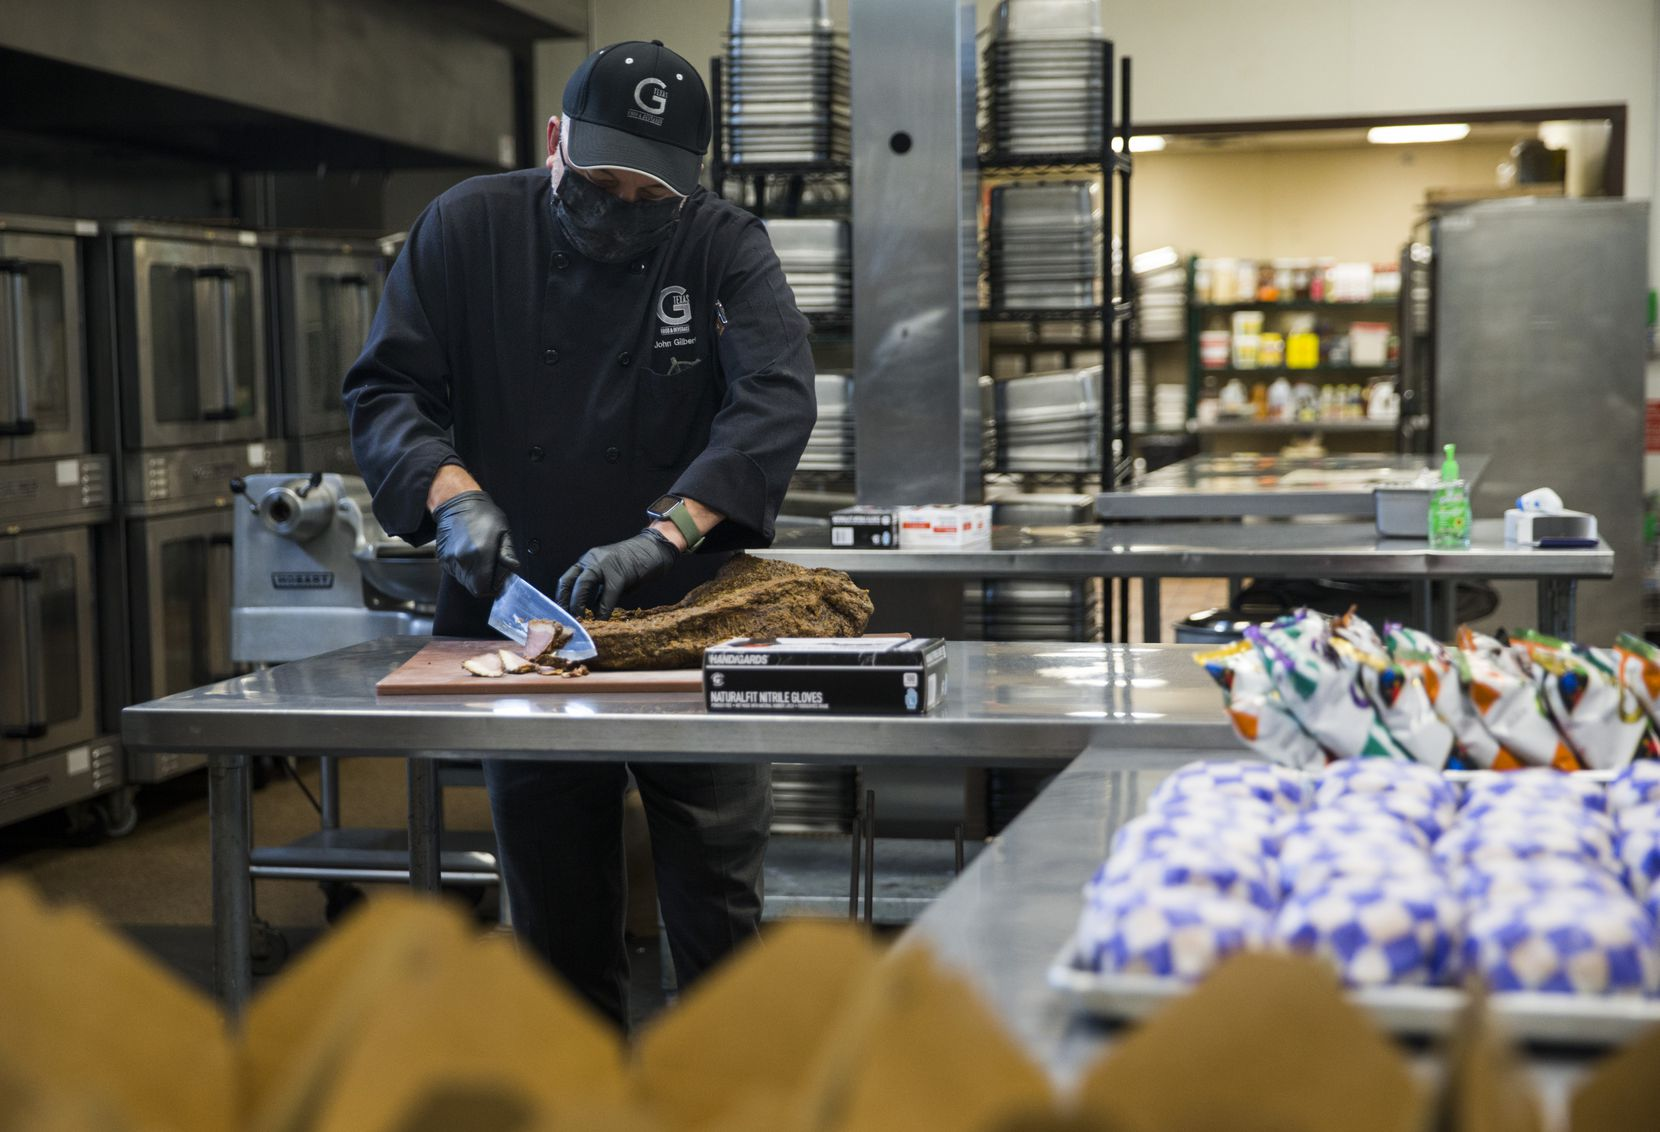 John Gilbert, owner of G-Texas Custom Catering, slices brisket for box lunches for Austin Street Shelter on Saturday, April 11, 2020 at G-Texas Custom Catering in Dallas.